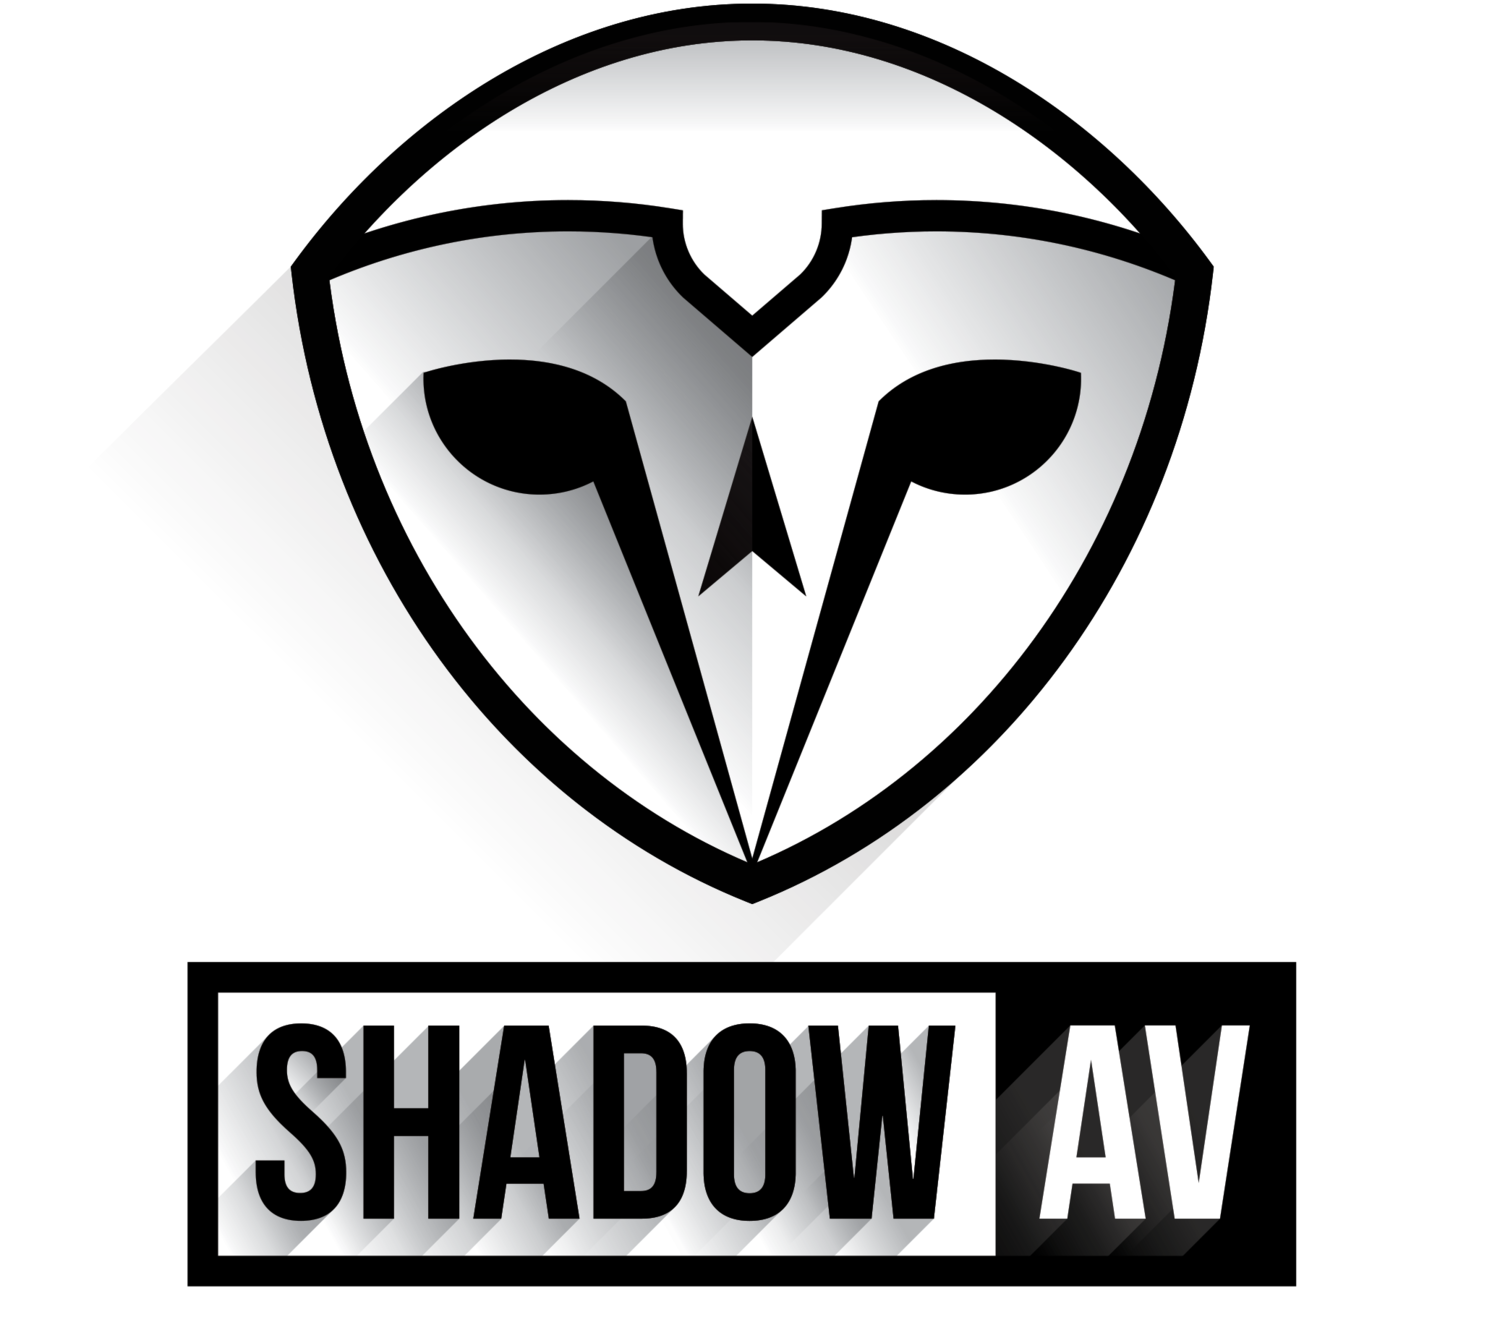 Shadow AV event production